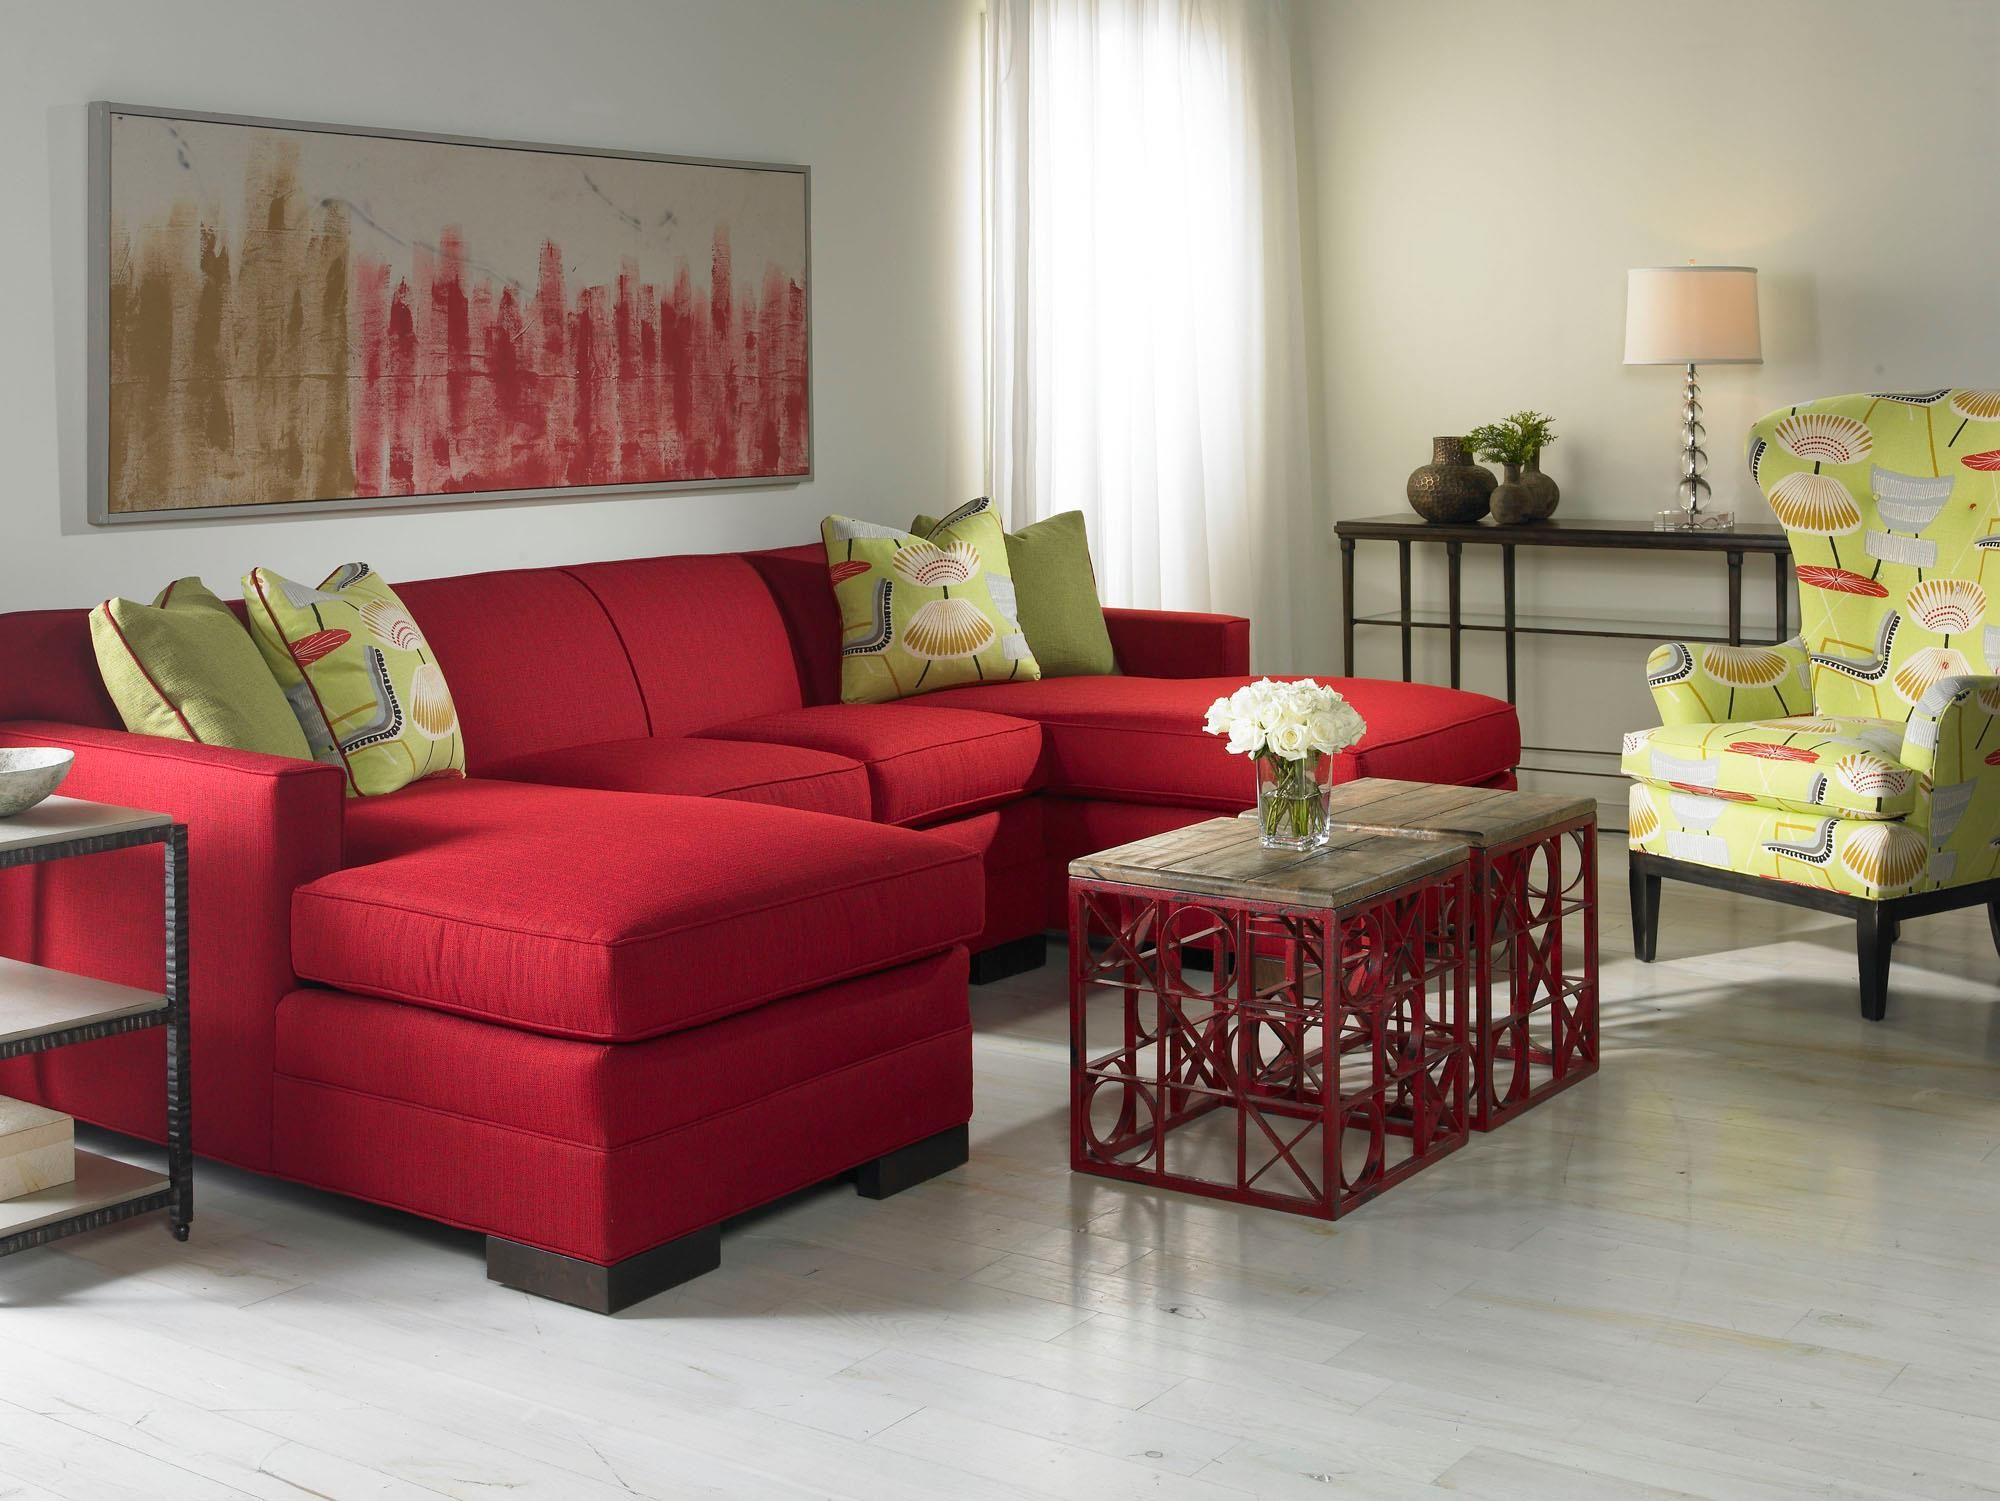 Best American Bungalow Collection From Vanguard Furniture 400 x 300